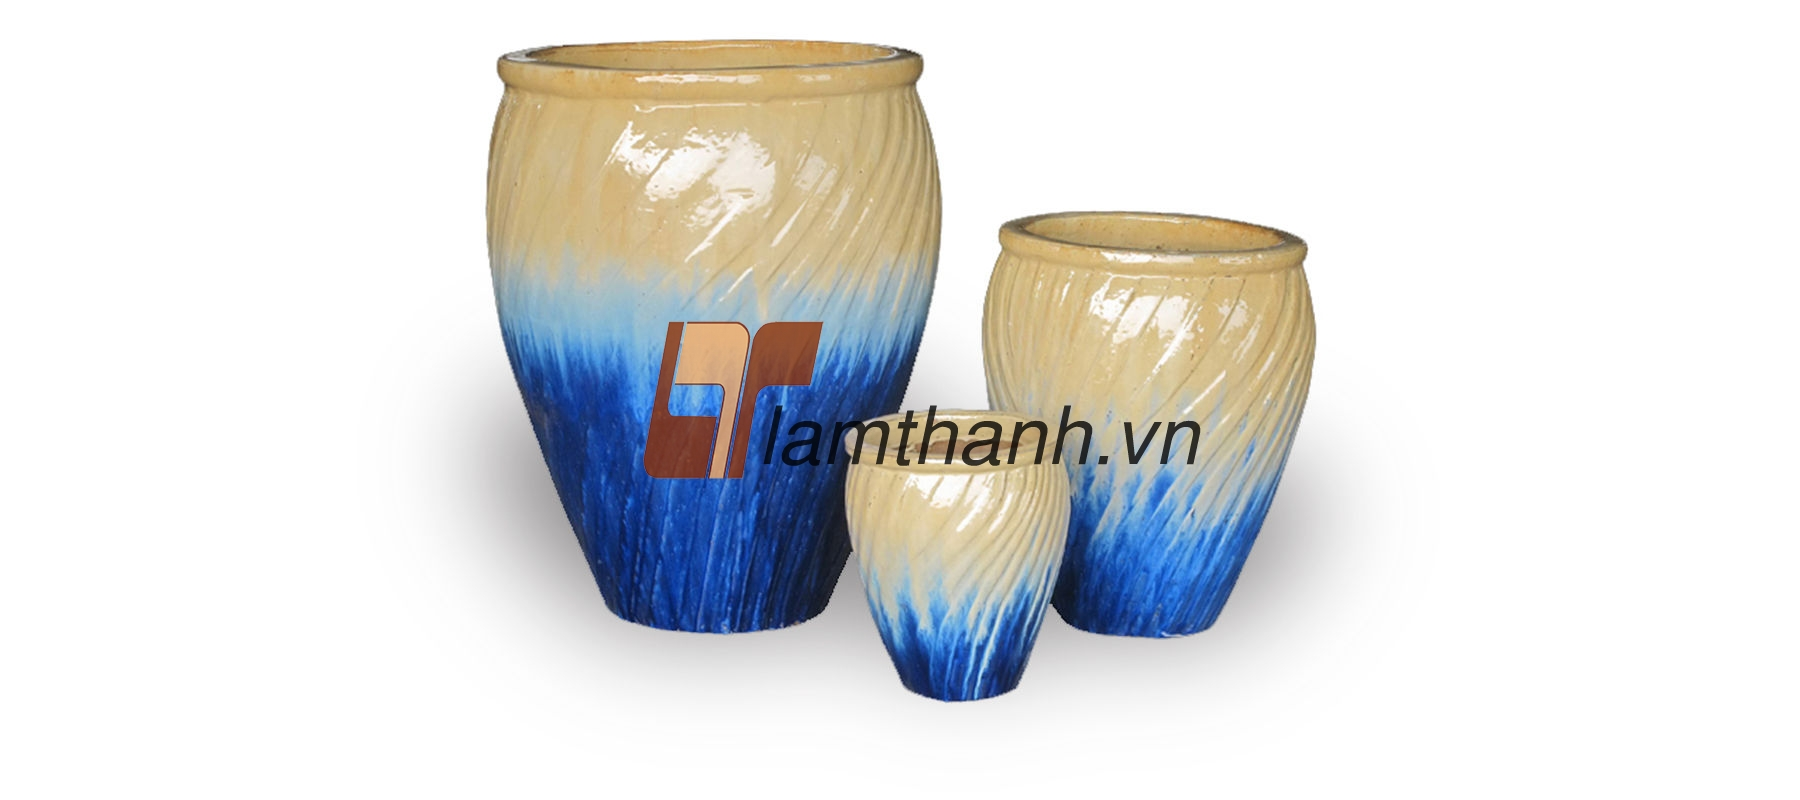 vietnam terracotta, outdoor glazed05